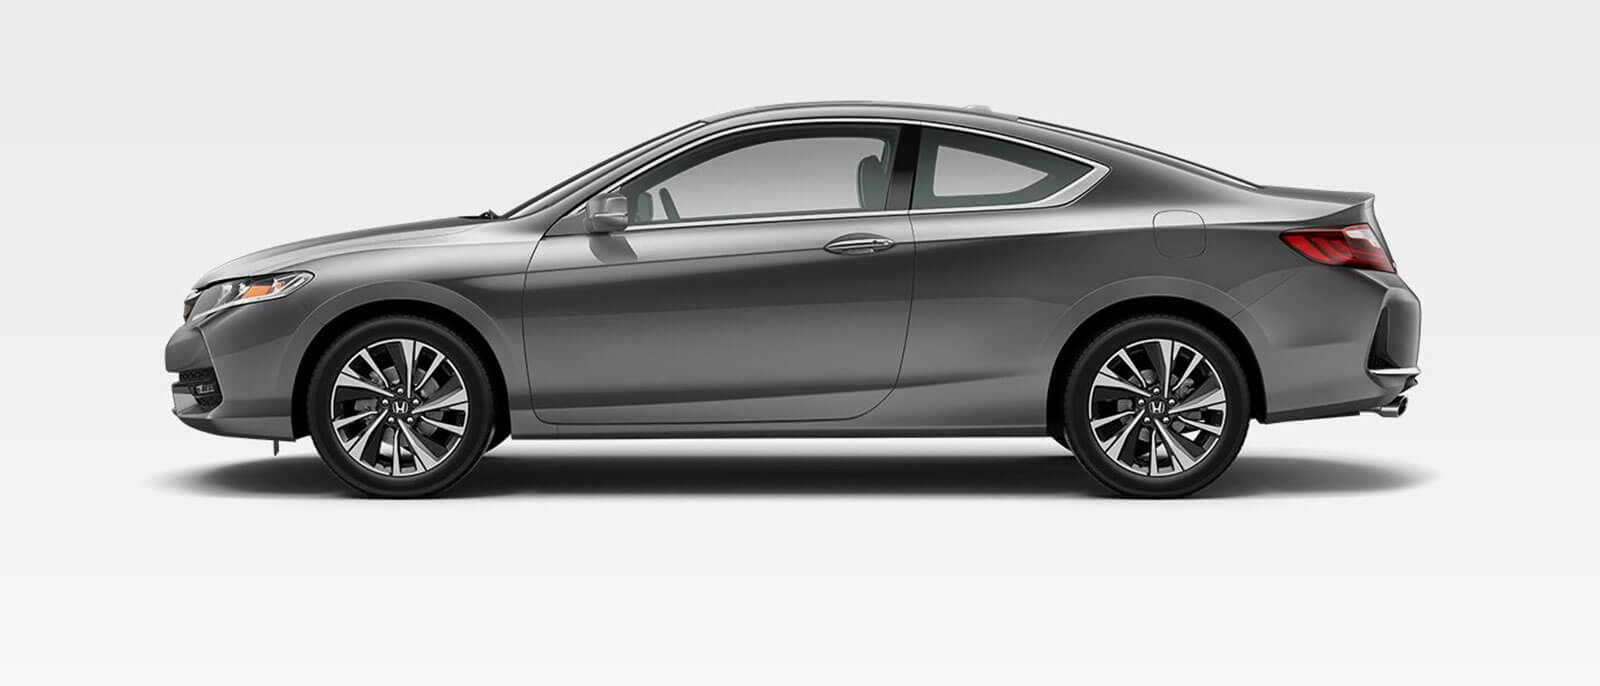 2017 Honda Accord Coupe side view